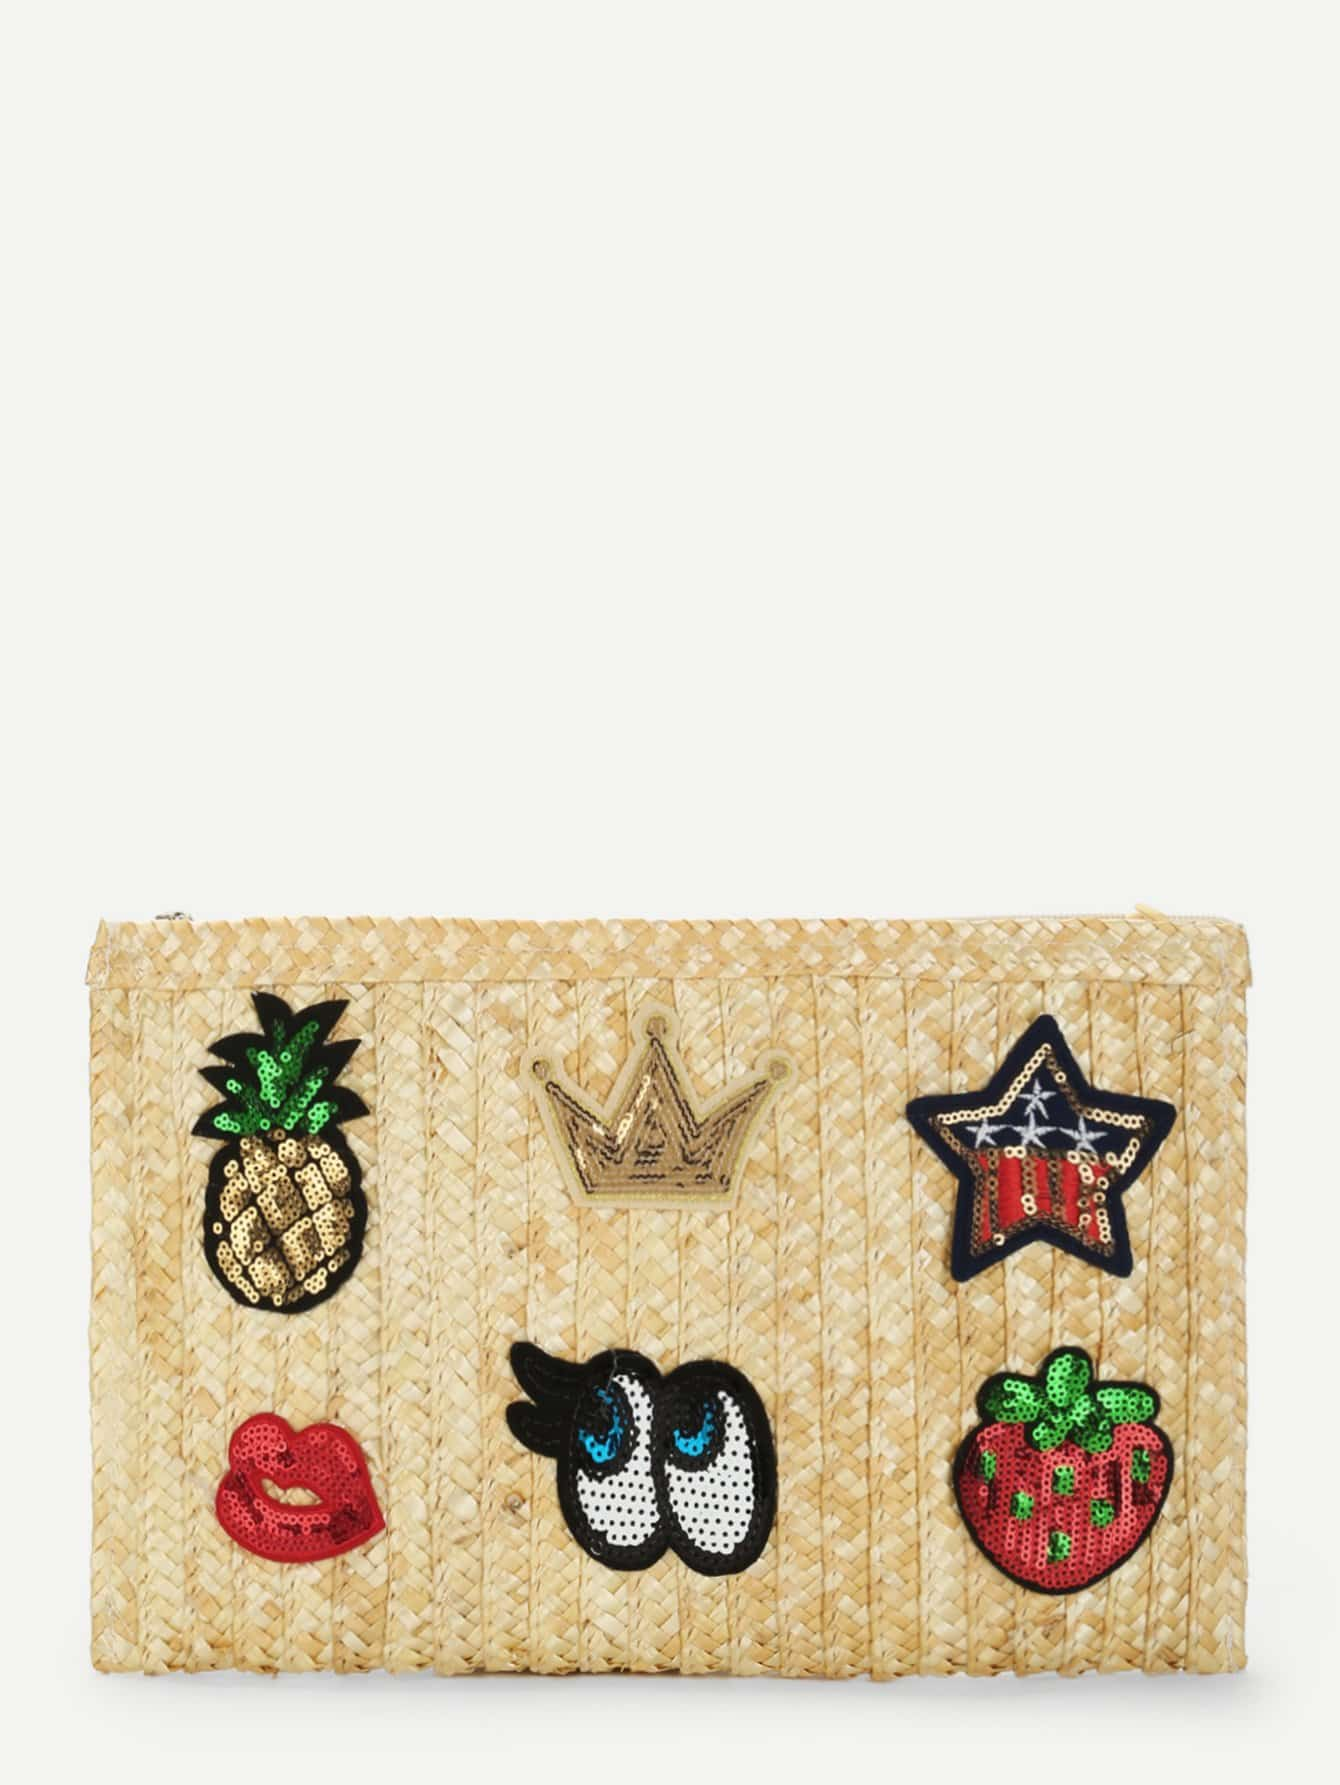 Patch Detail Straw Clutch bag patch detail combination bag with clutch bag